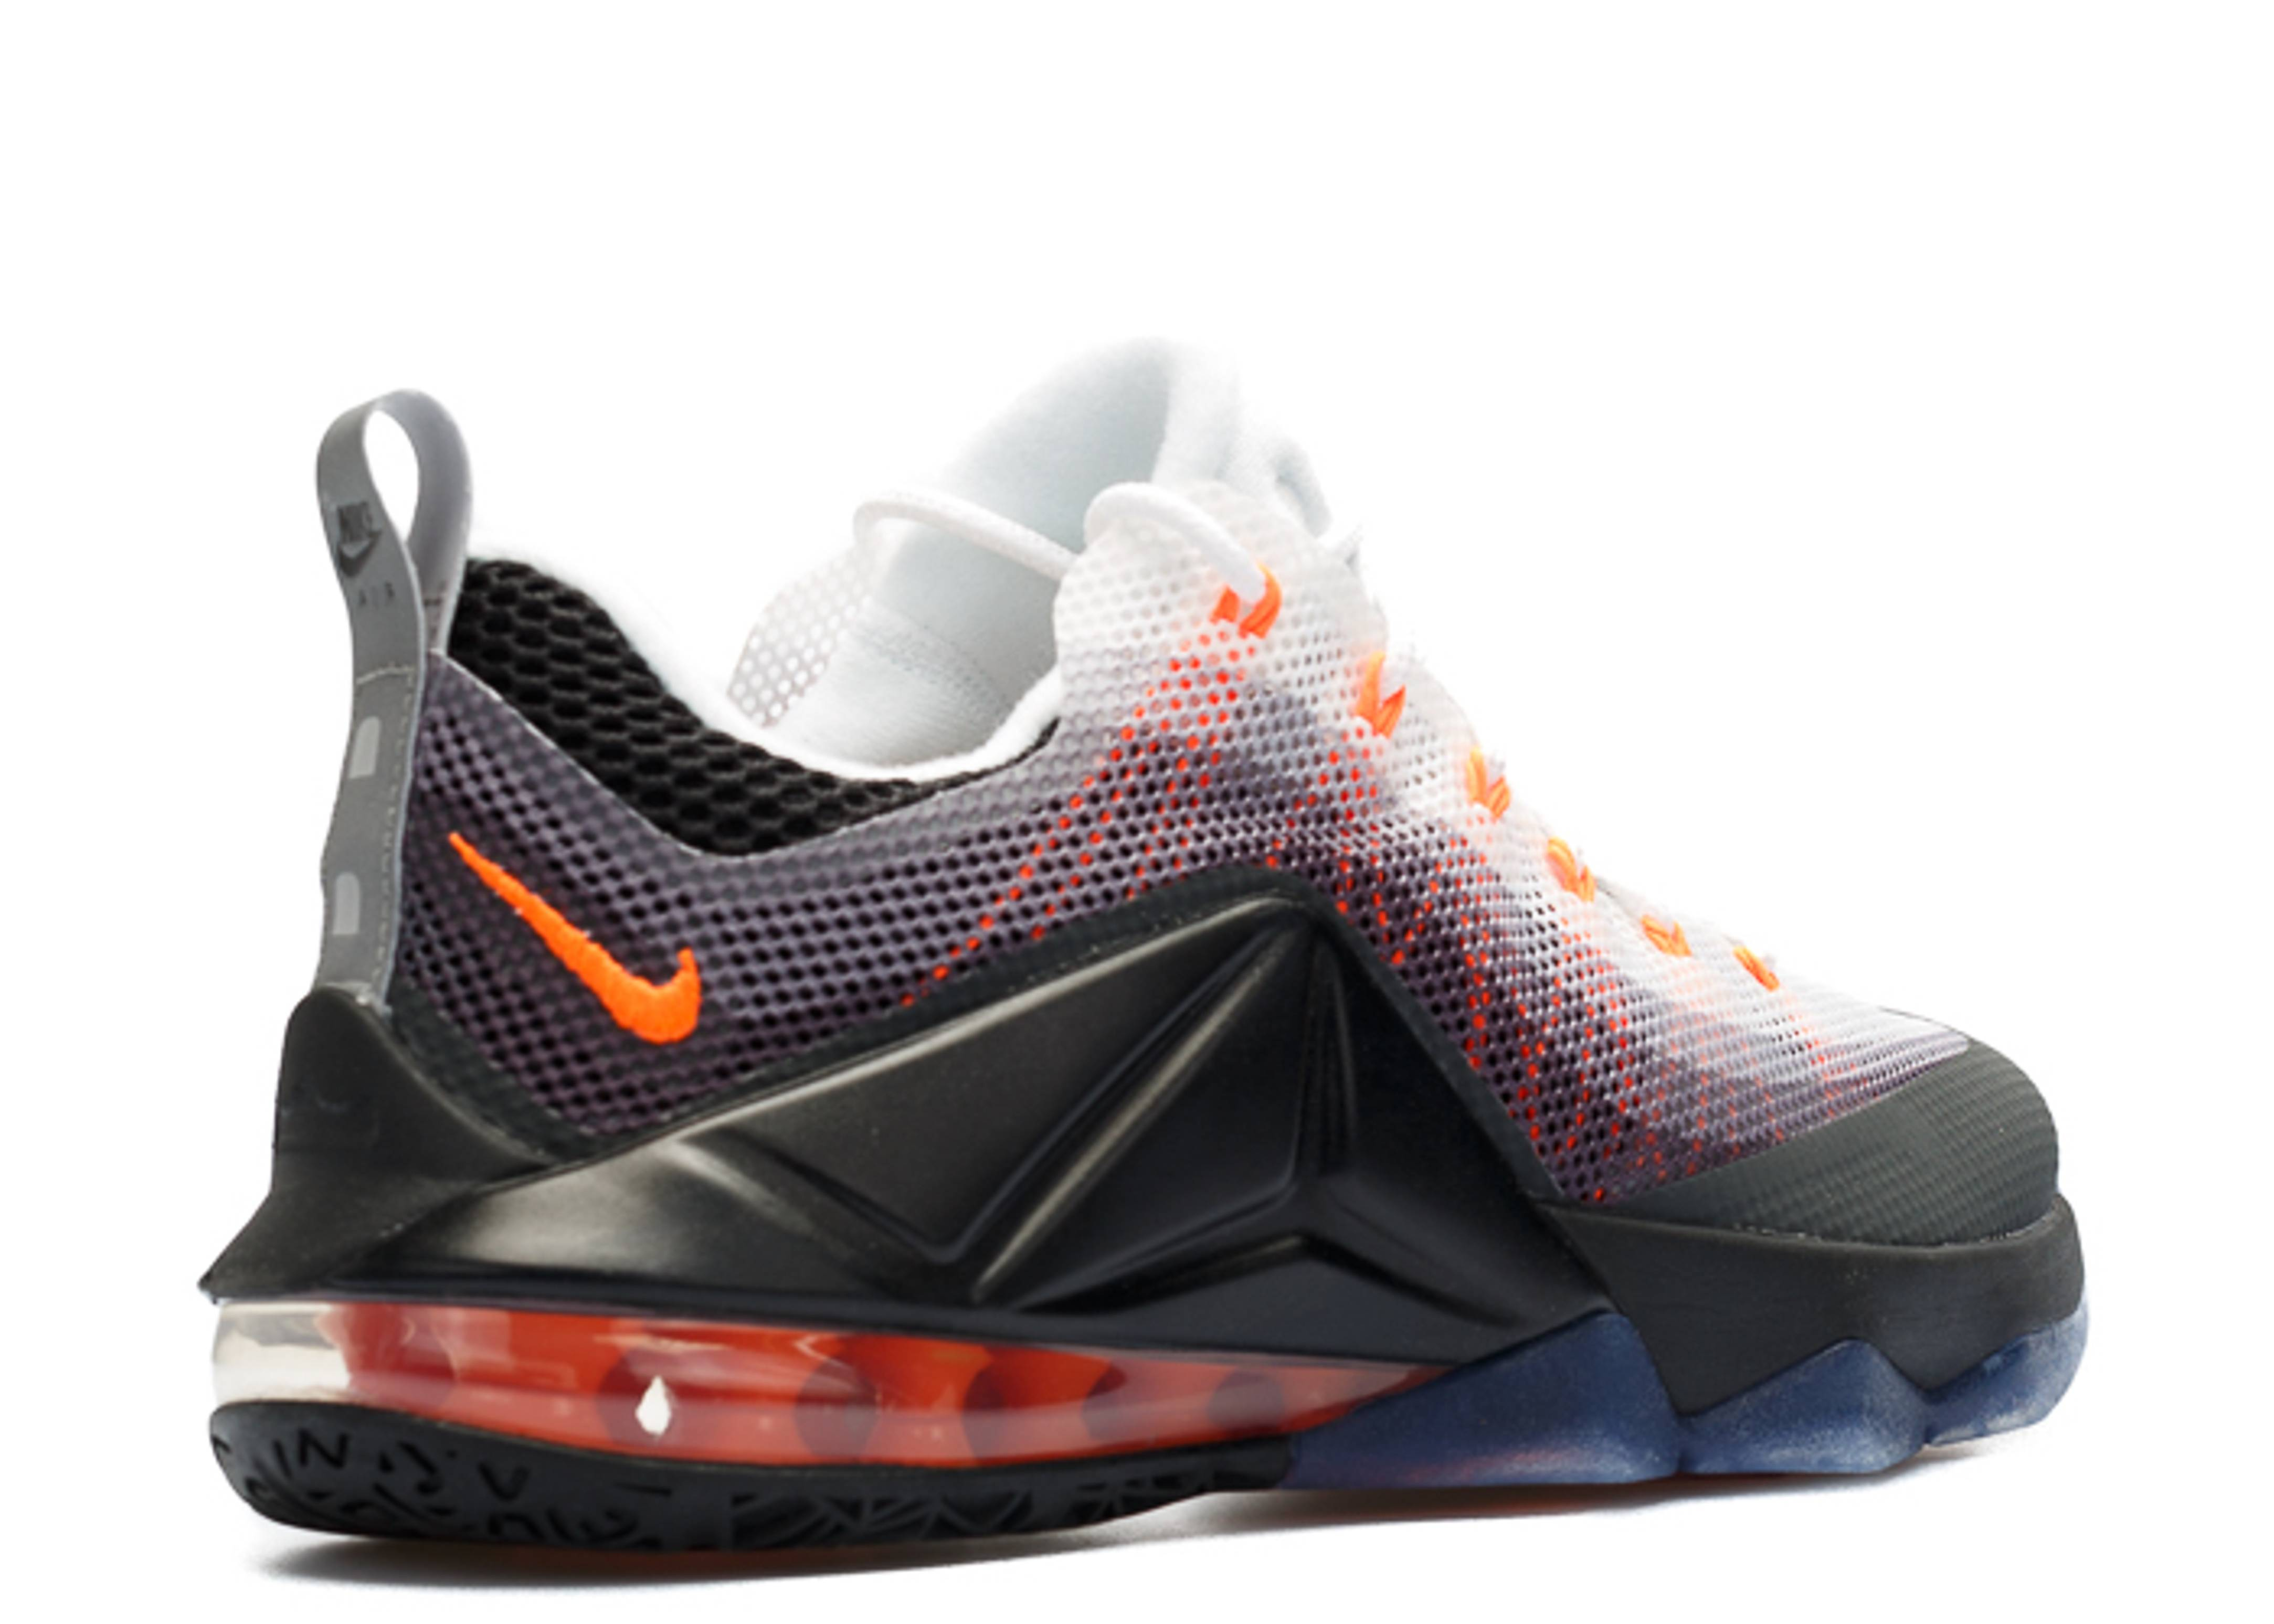 detailed look 9645f 3c599 air max lebron 8 low black The Nike Lebron 9